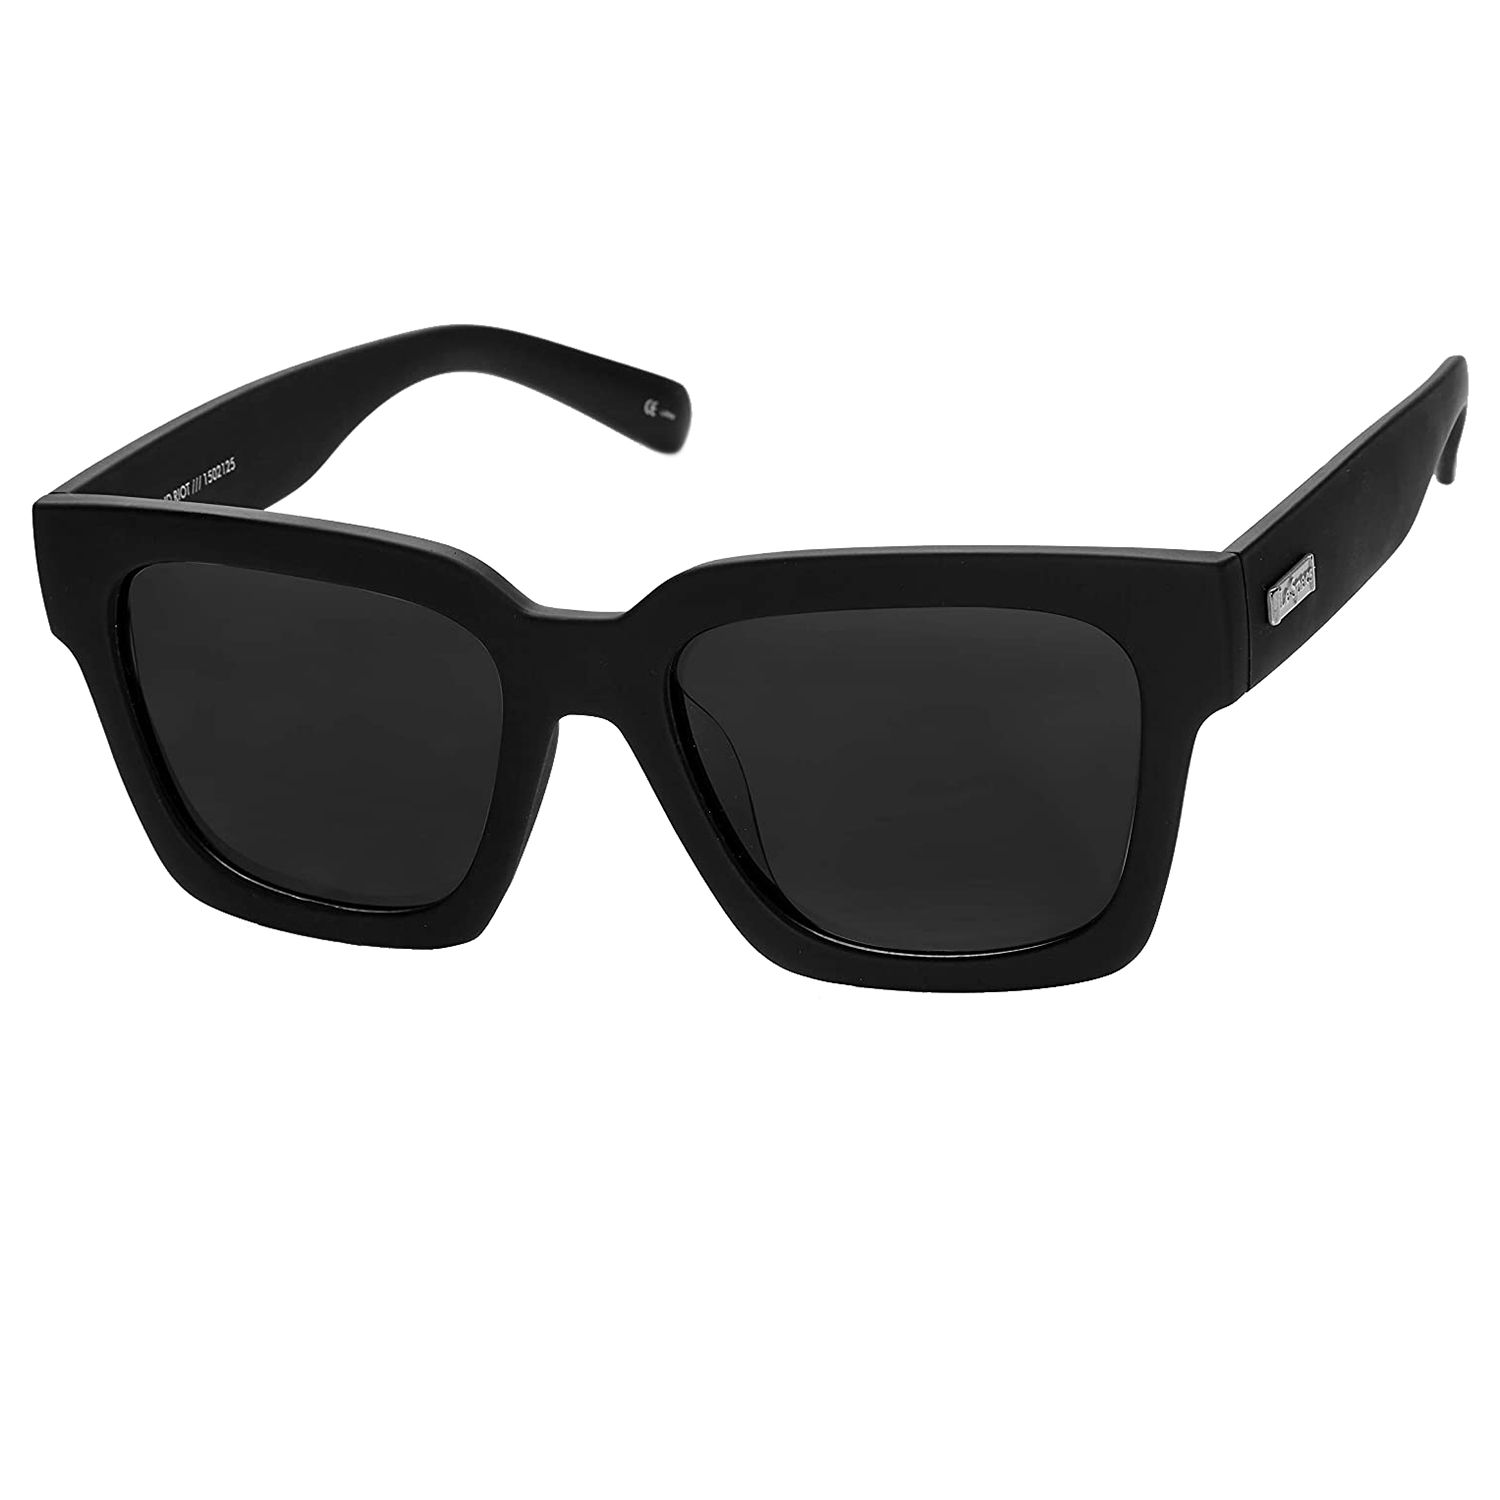 le specs sunglasses amazon prime day 2020